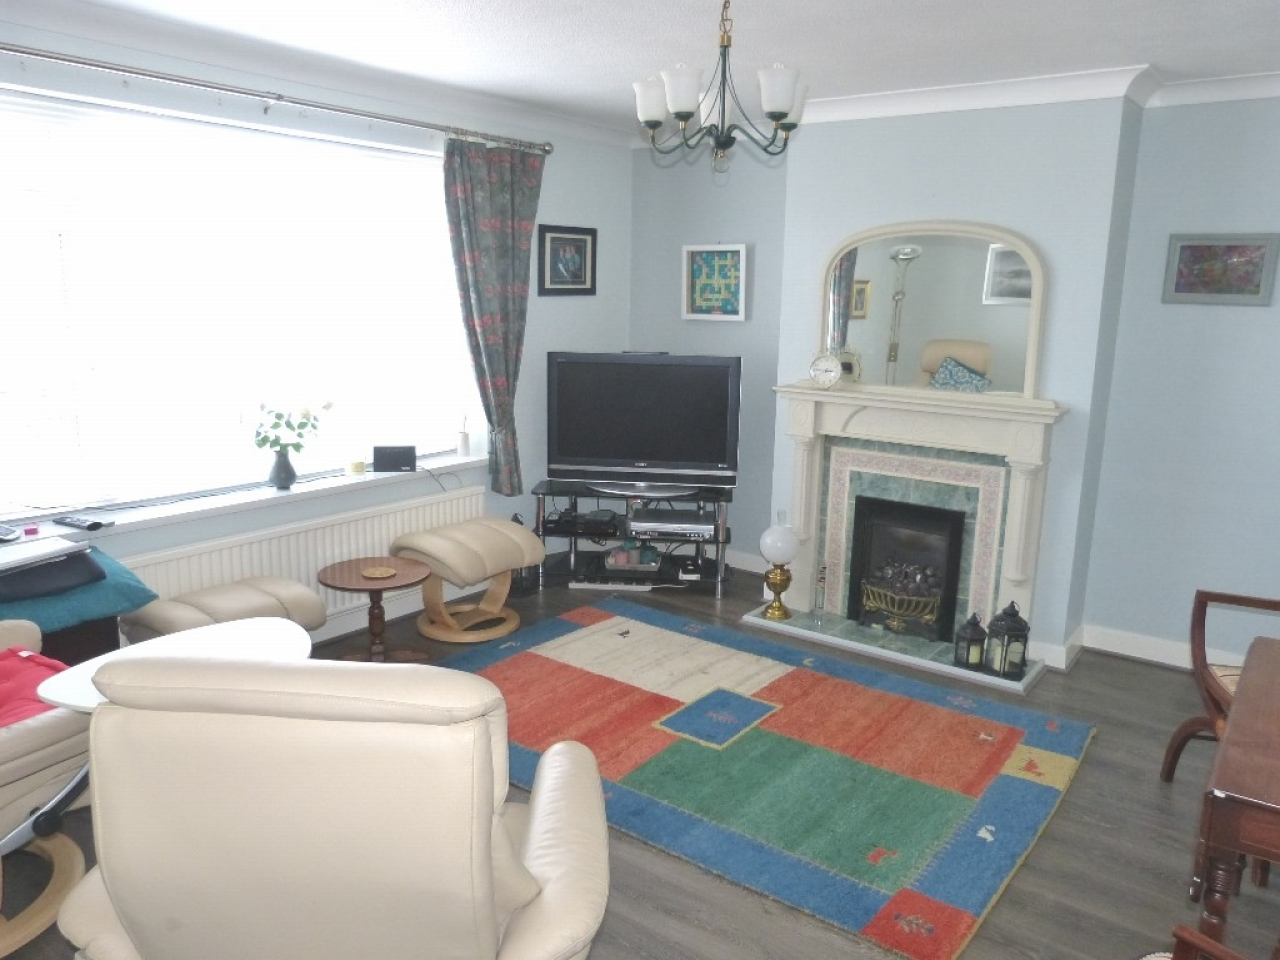 4 bedroom detached bungalow SSTC in Abergele - Photograph 2